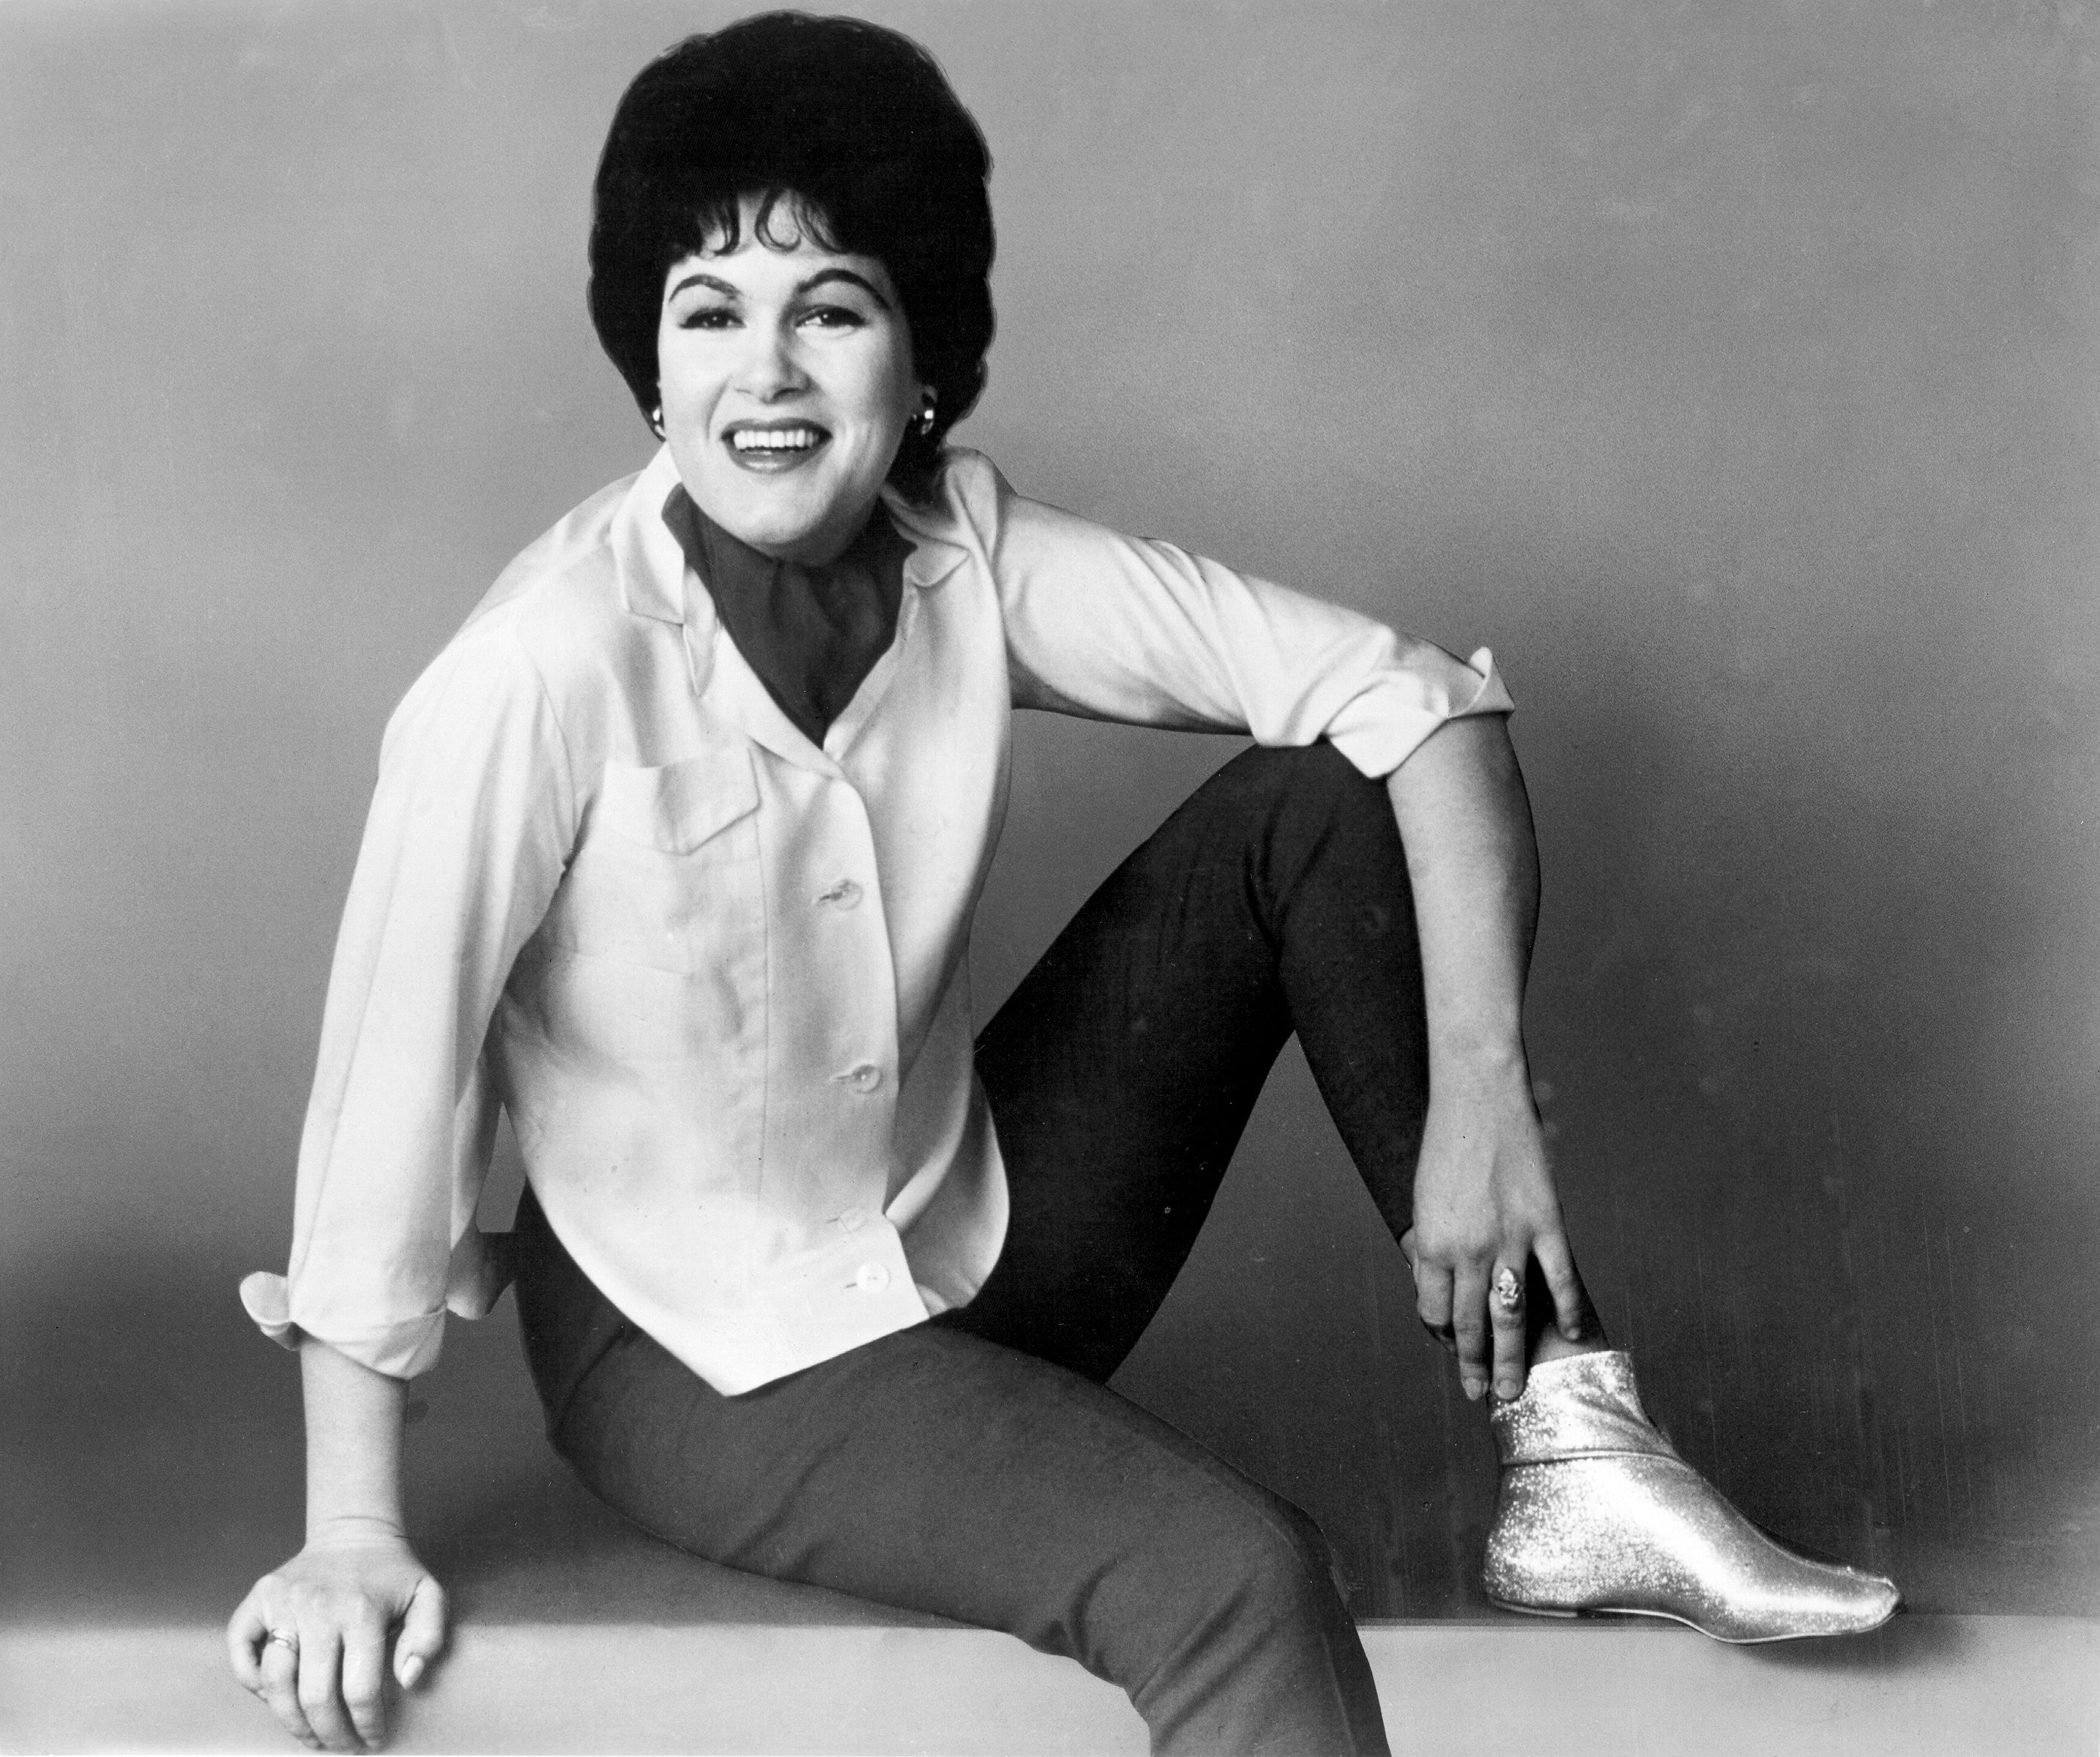 """Patsy Cline Said """"When It's My Time to Go, It's My Time to Go"""" Right Before She Was Killed in a Plane Crash"""